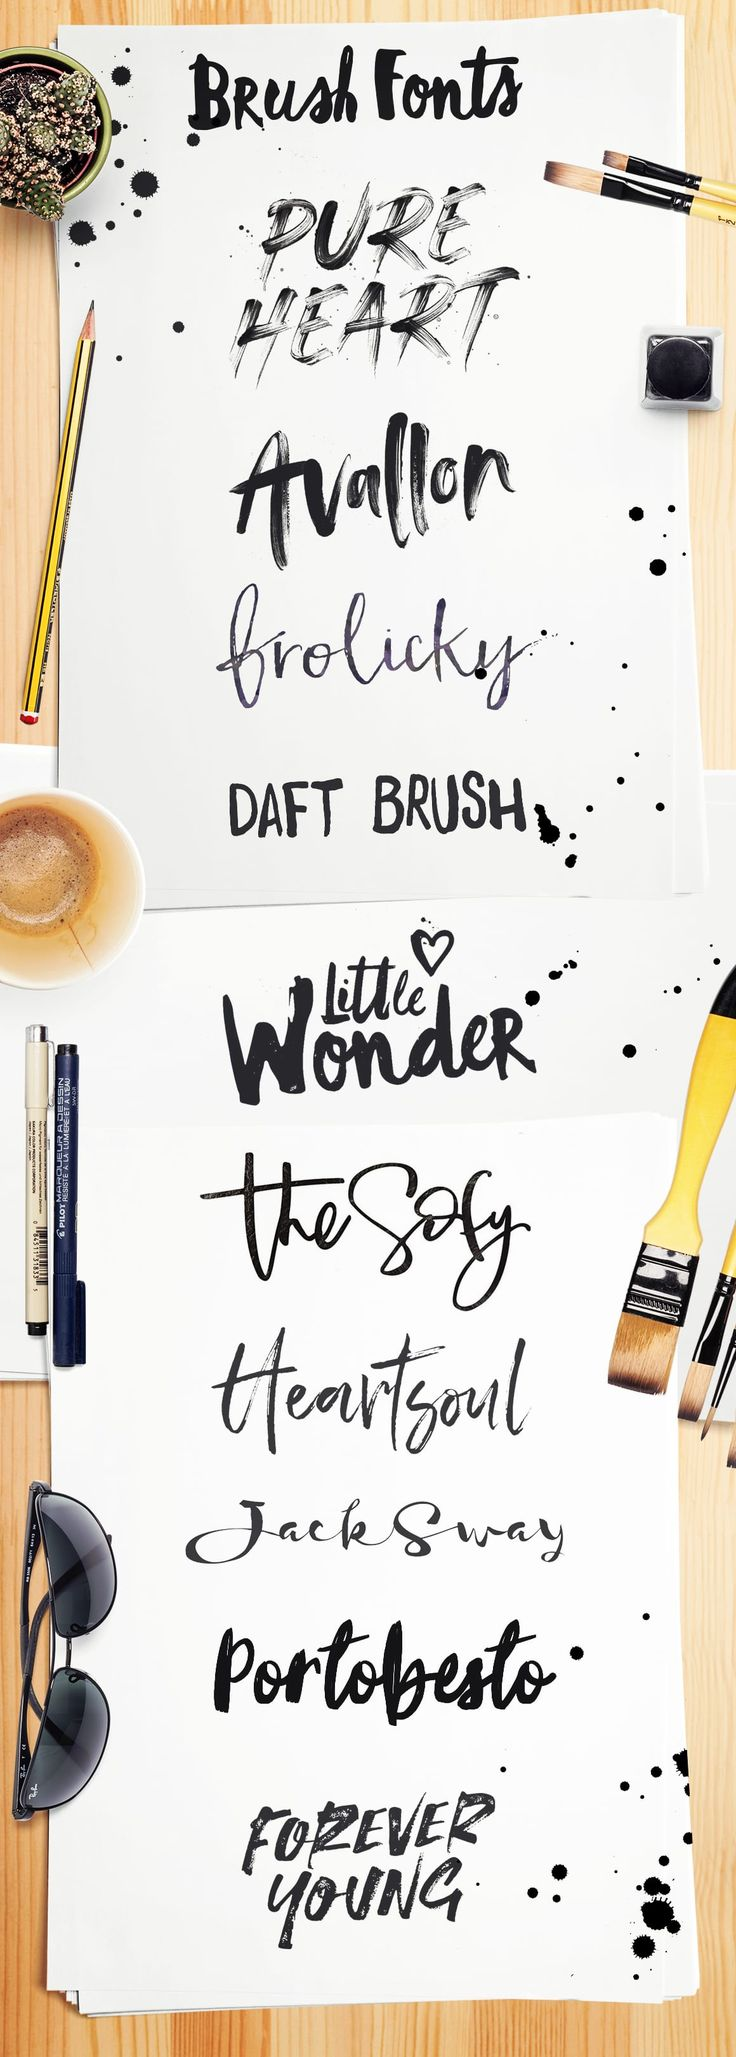 Brush font inspiration 10 awesome examples of modern handmade brush fonts. Brush fonts, from script to display all hand drawn with Irregular brush marks, thick and thin strokes with wobbly lines and the odd paint drip.